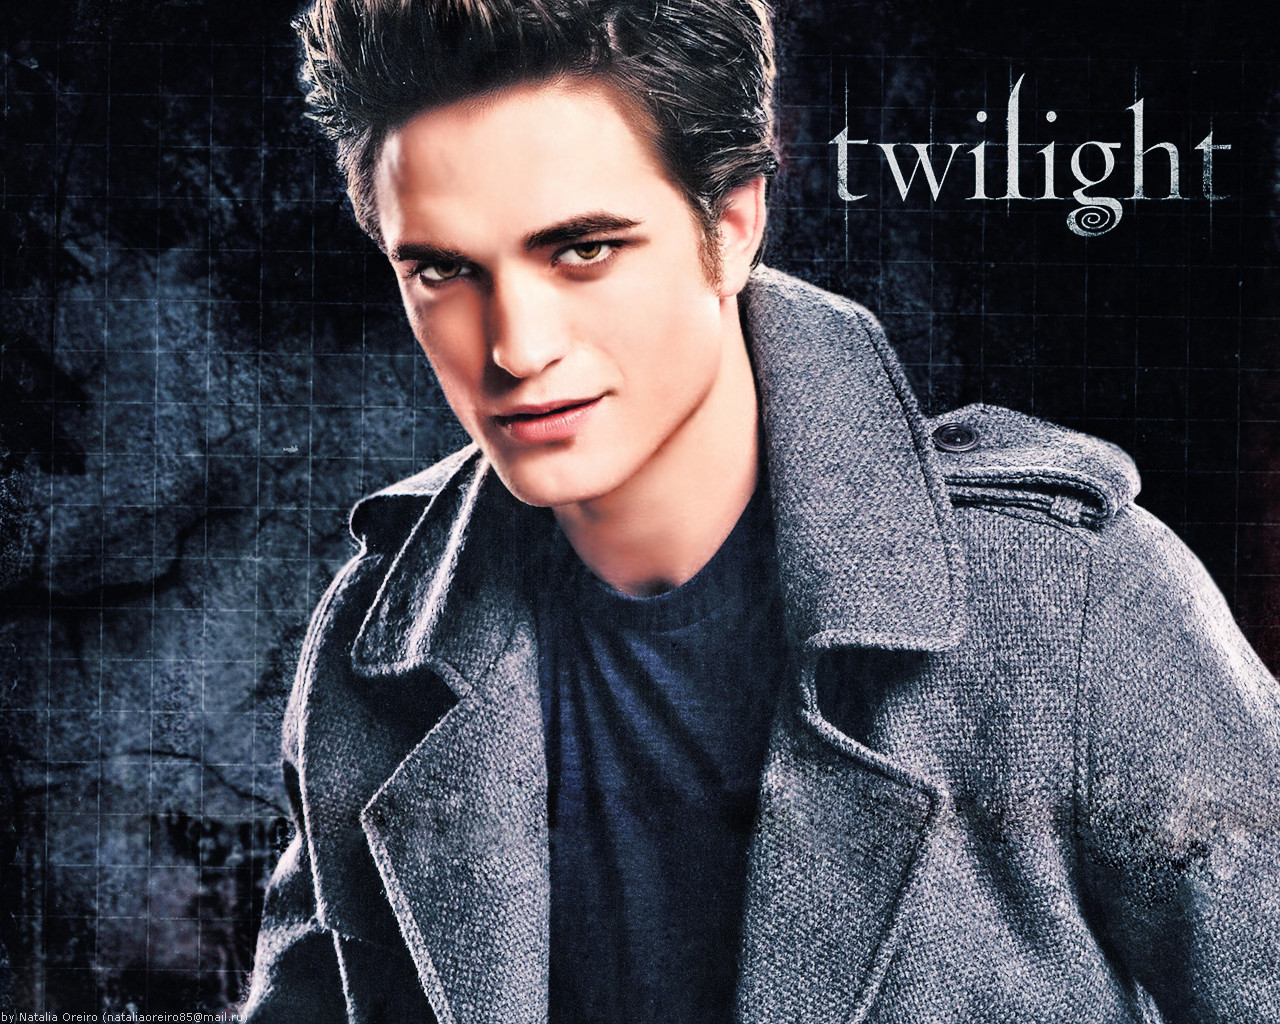 Image gallary 9 edward cullen beautiful twilight for Twilight edward photos